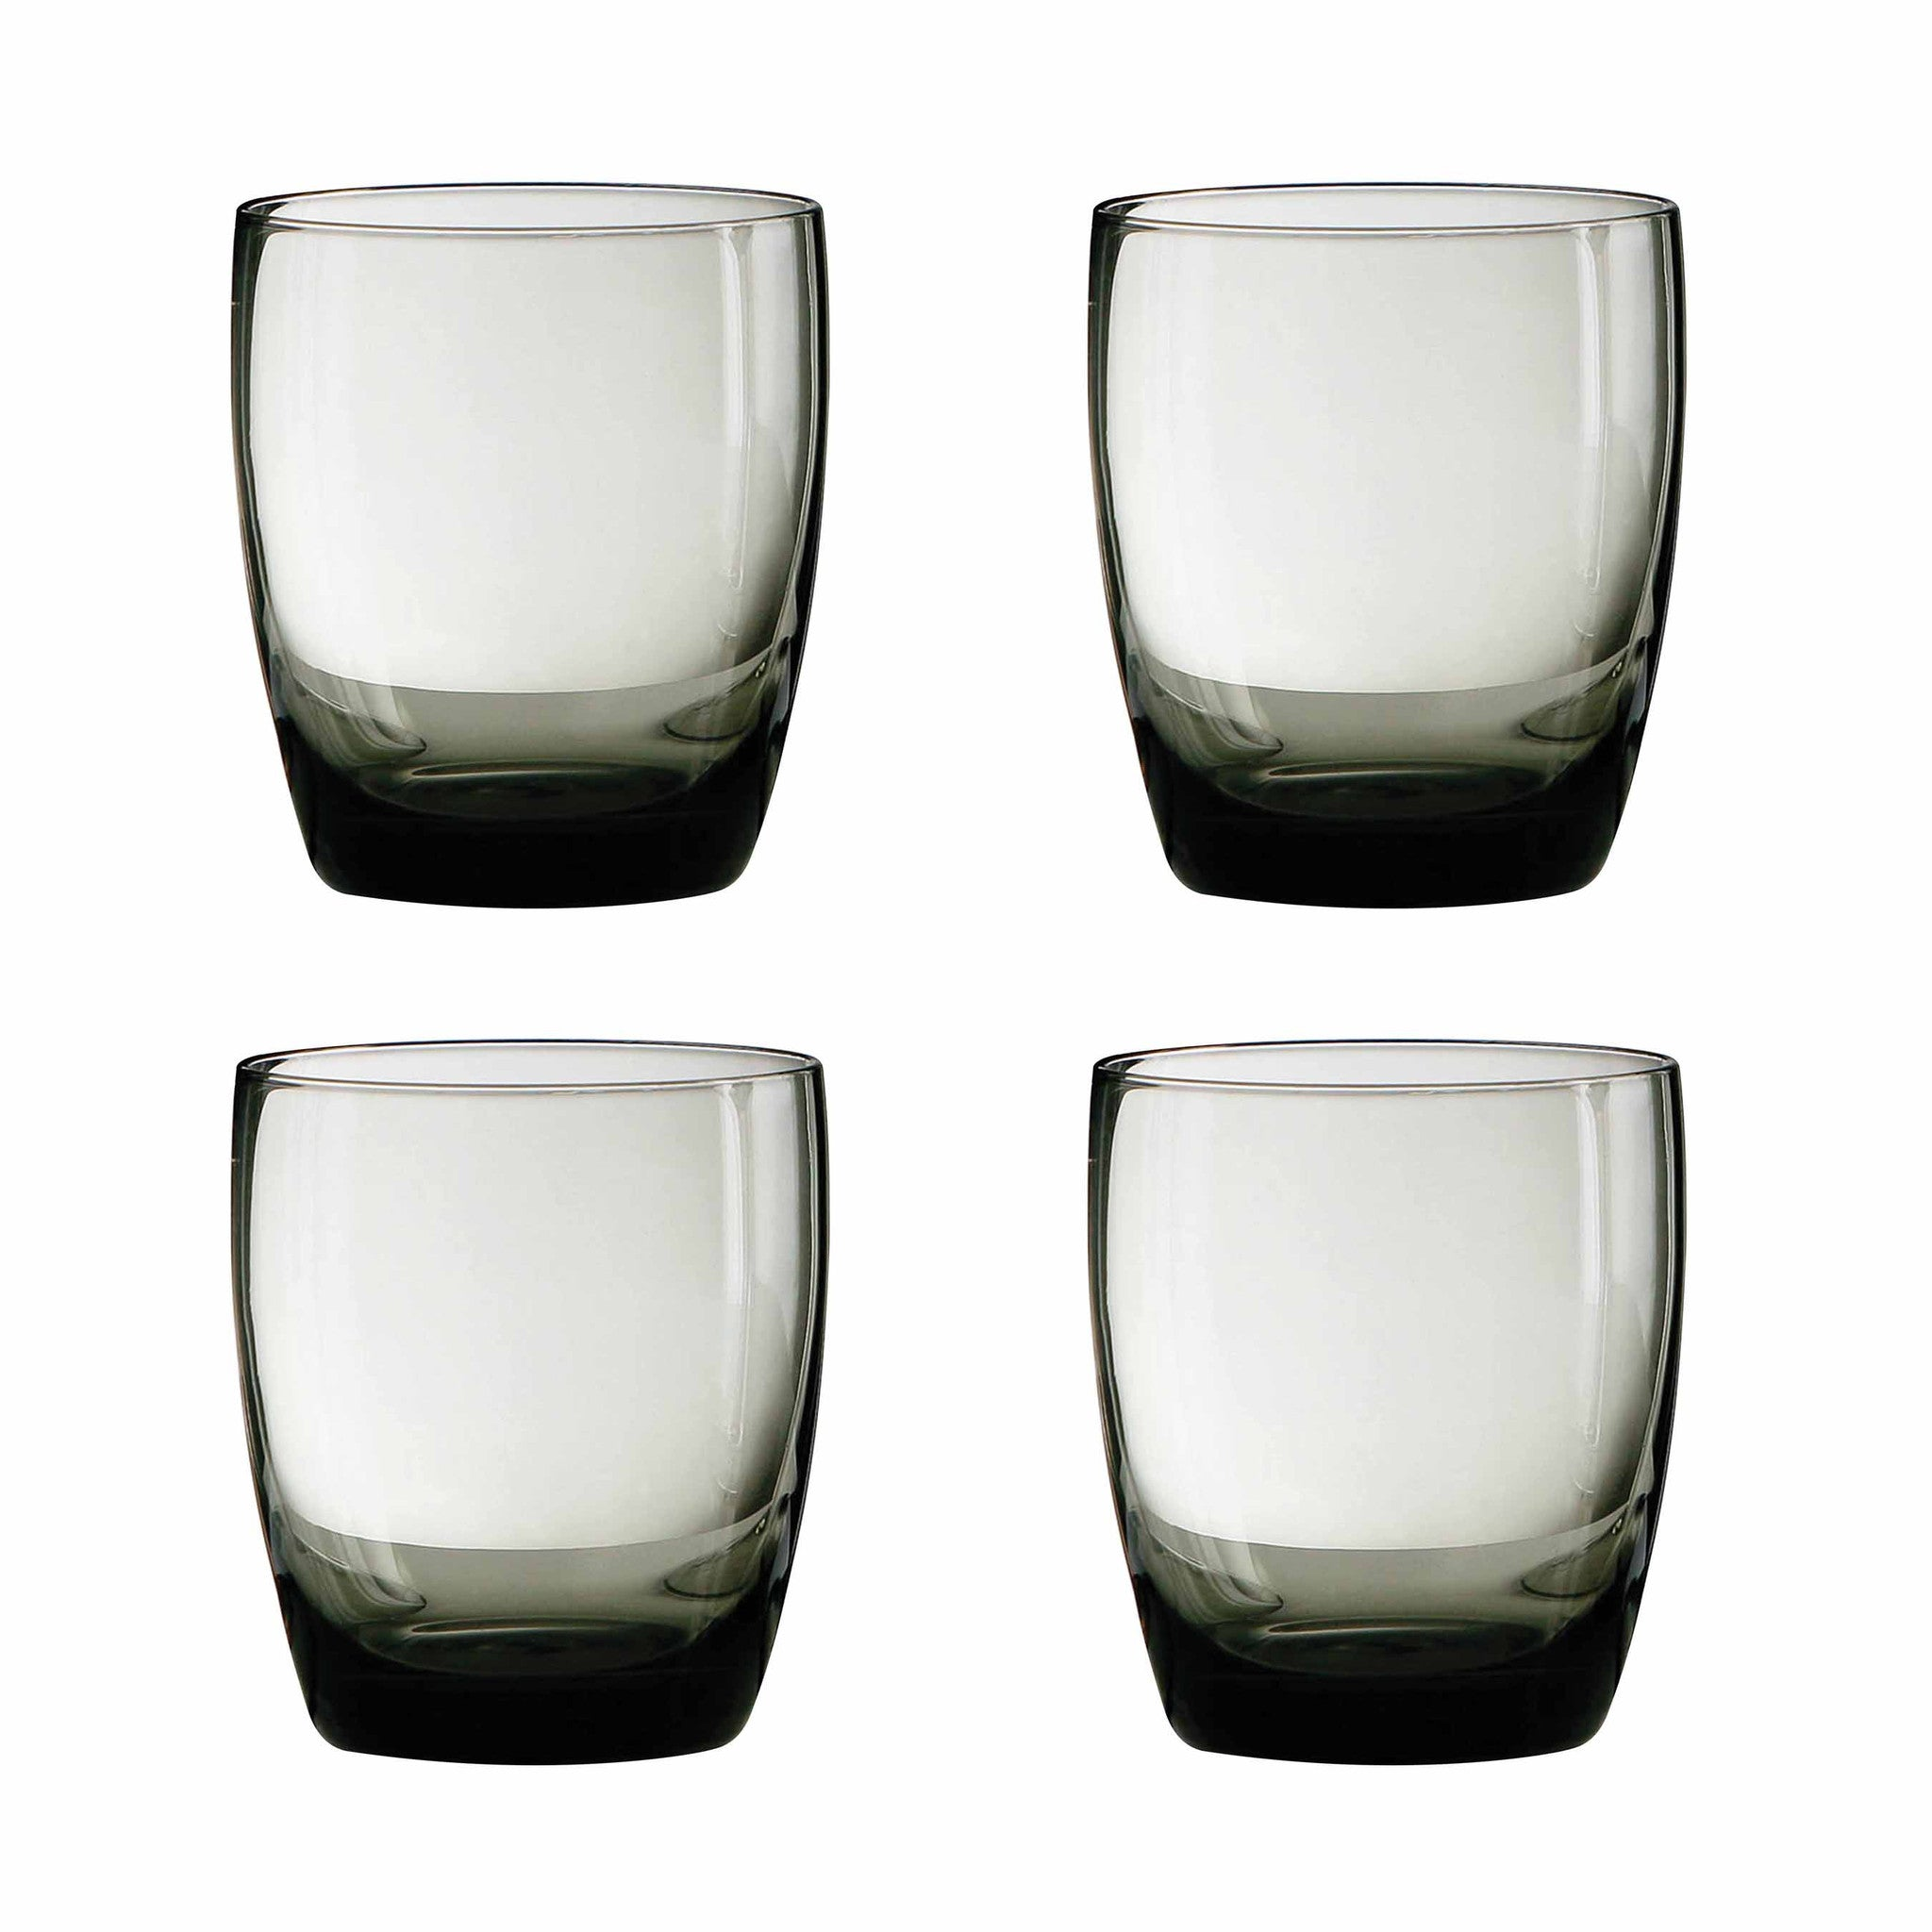 Premier S/4 Smoked Mixer Glasses- 1404573 - Homely Nigeria